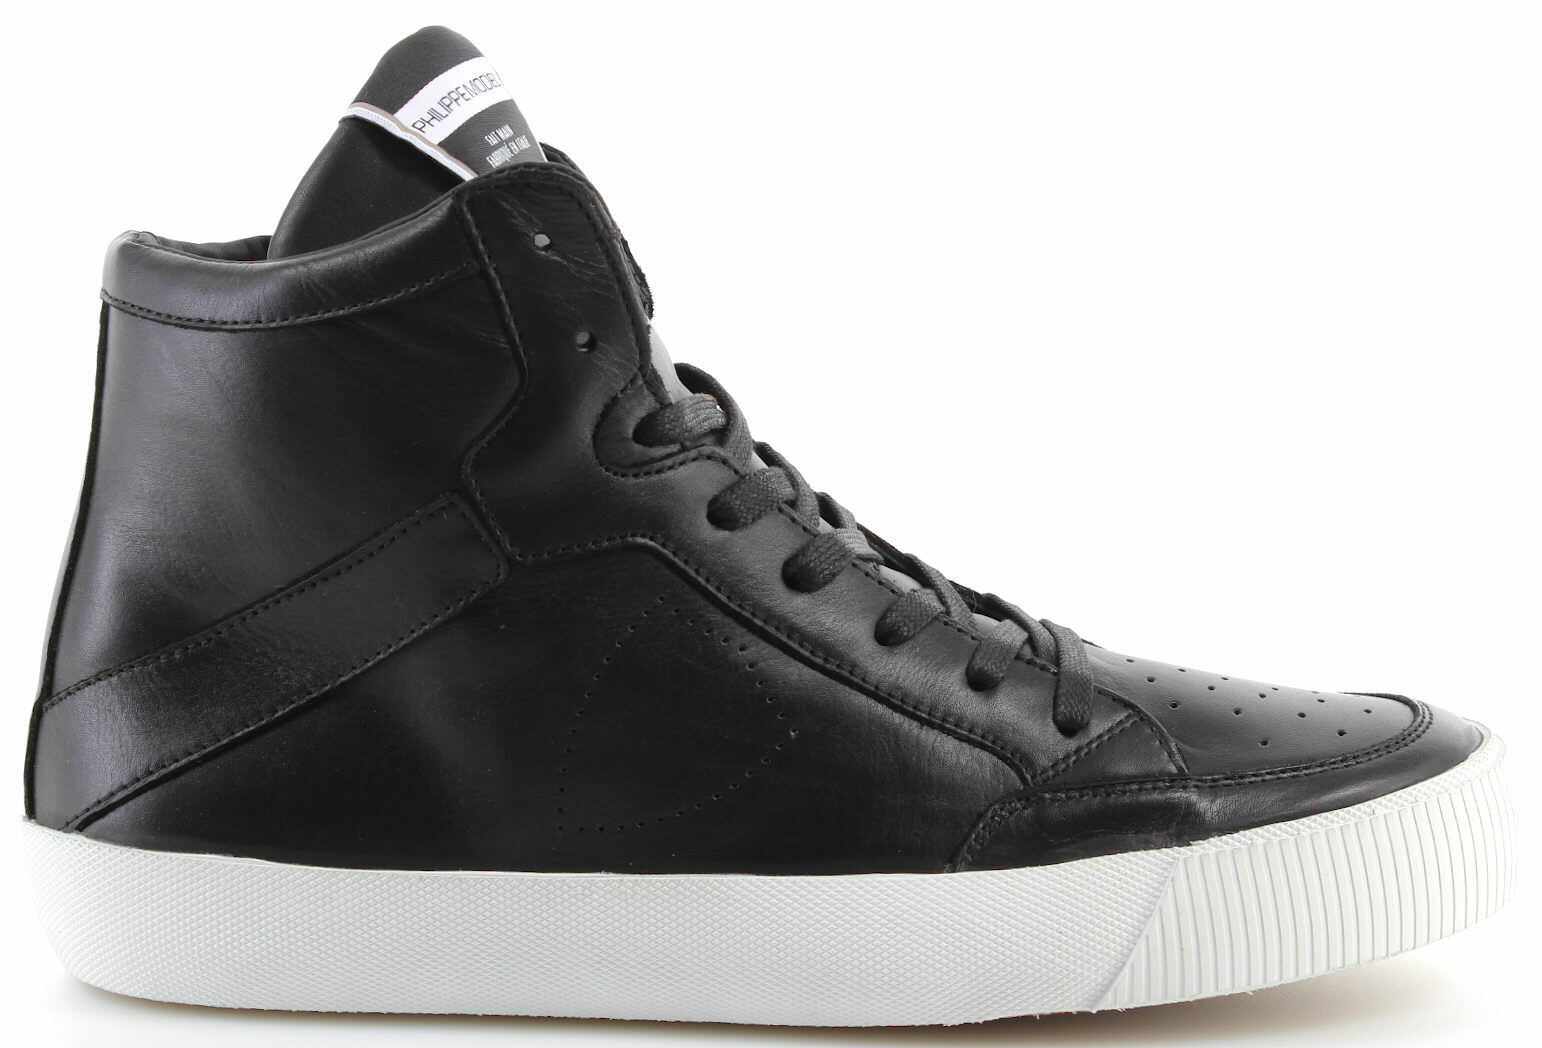 Men's Shoes Sneakers PHILIPPE MODEL Knicks Paris Knicks MODEL Veau Noir Blanc Made In Italy 3b142d